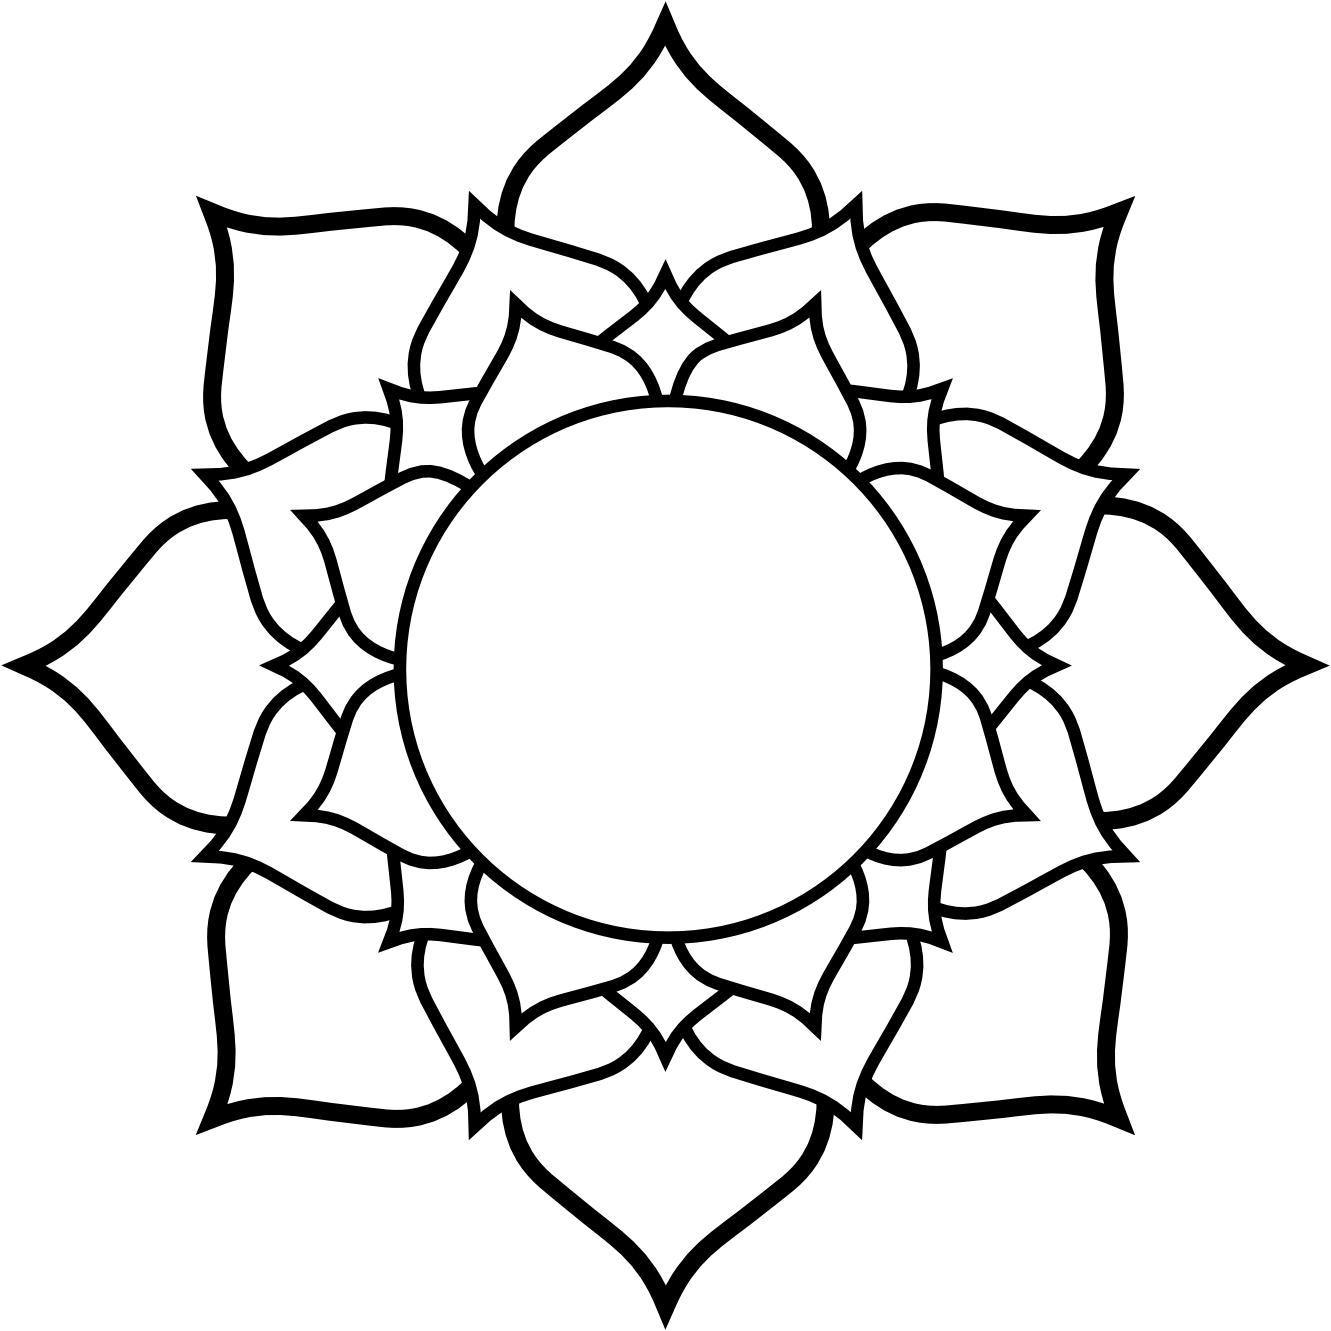 clip art royalty free library Lotus flower black and white clipart. Clipartist info line art